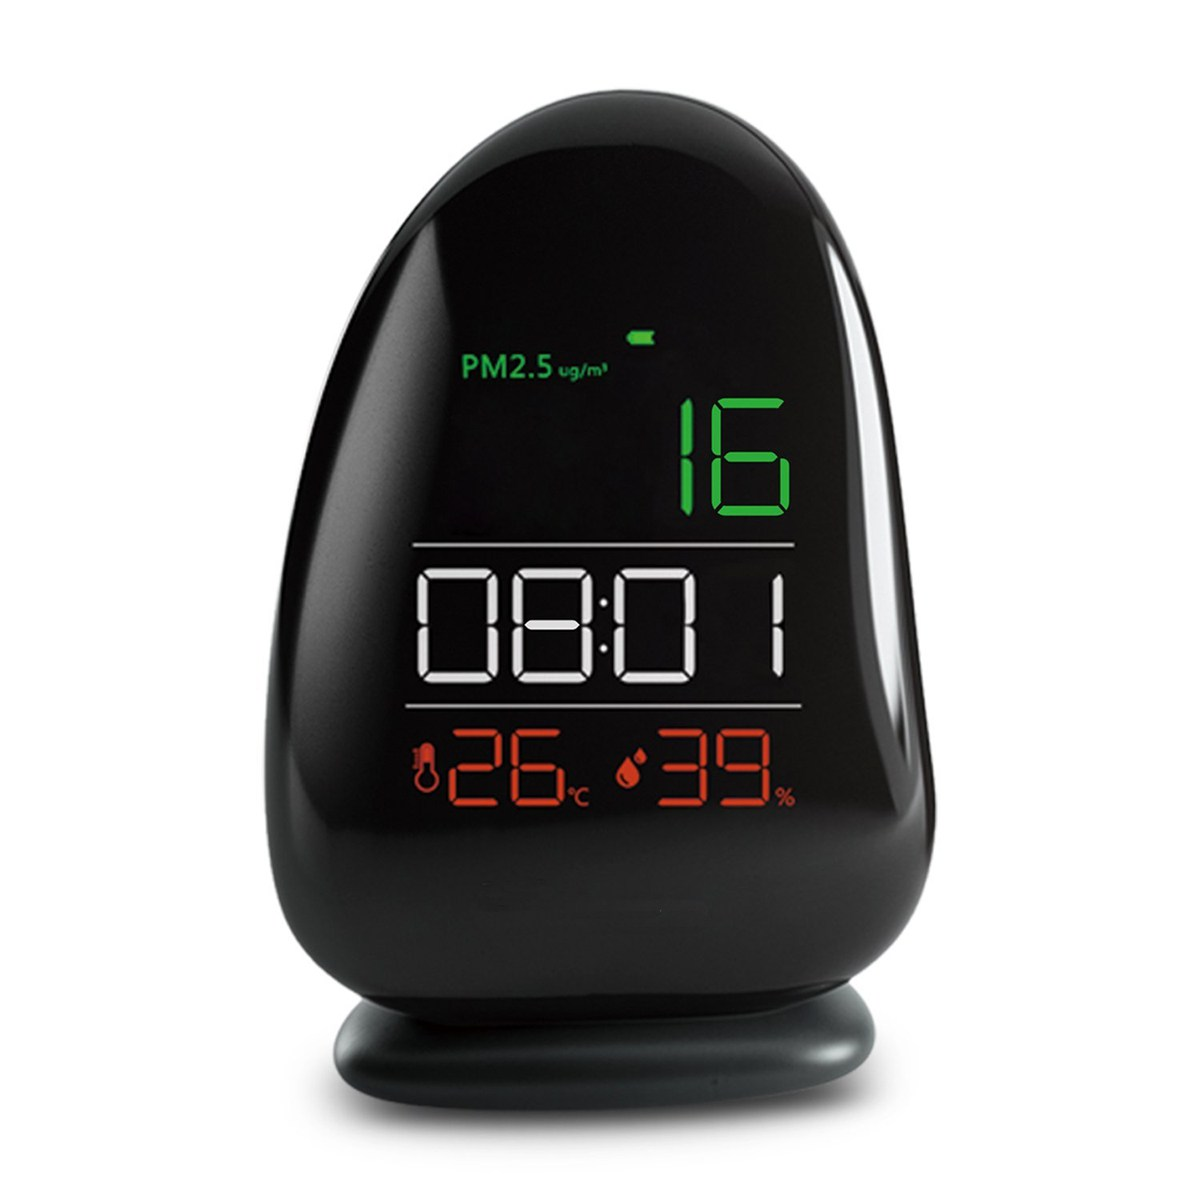 PM2.5 Laser Sensor Detector Air Quality Monitor Meter w/ Temperature/Level/RH humidity/Time Gas Analyzers For Home Office School digital indoor air quality carbon dioxide meter temperature rh humidity twa stel display 99 points made in taiwan co2 monitor